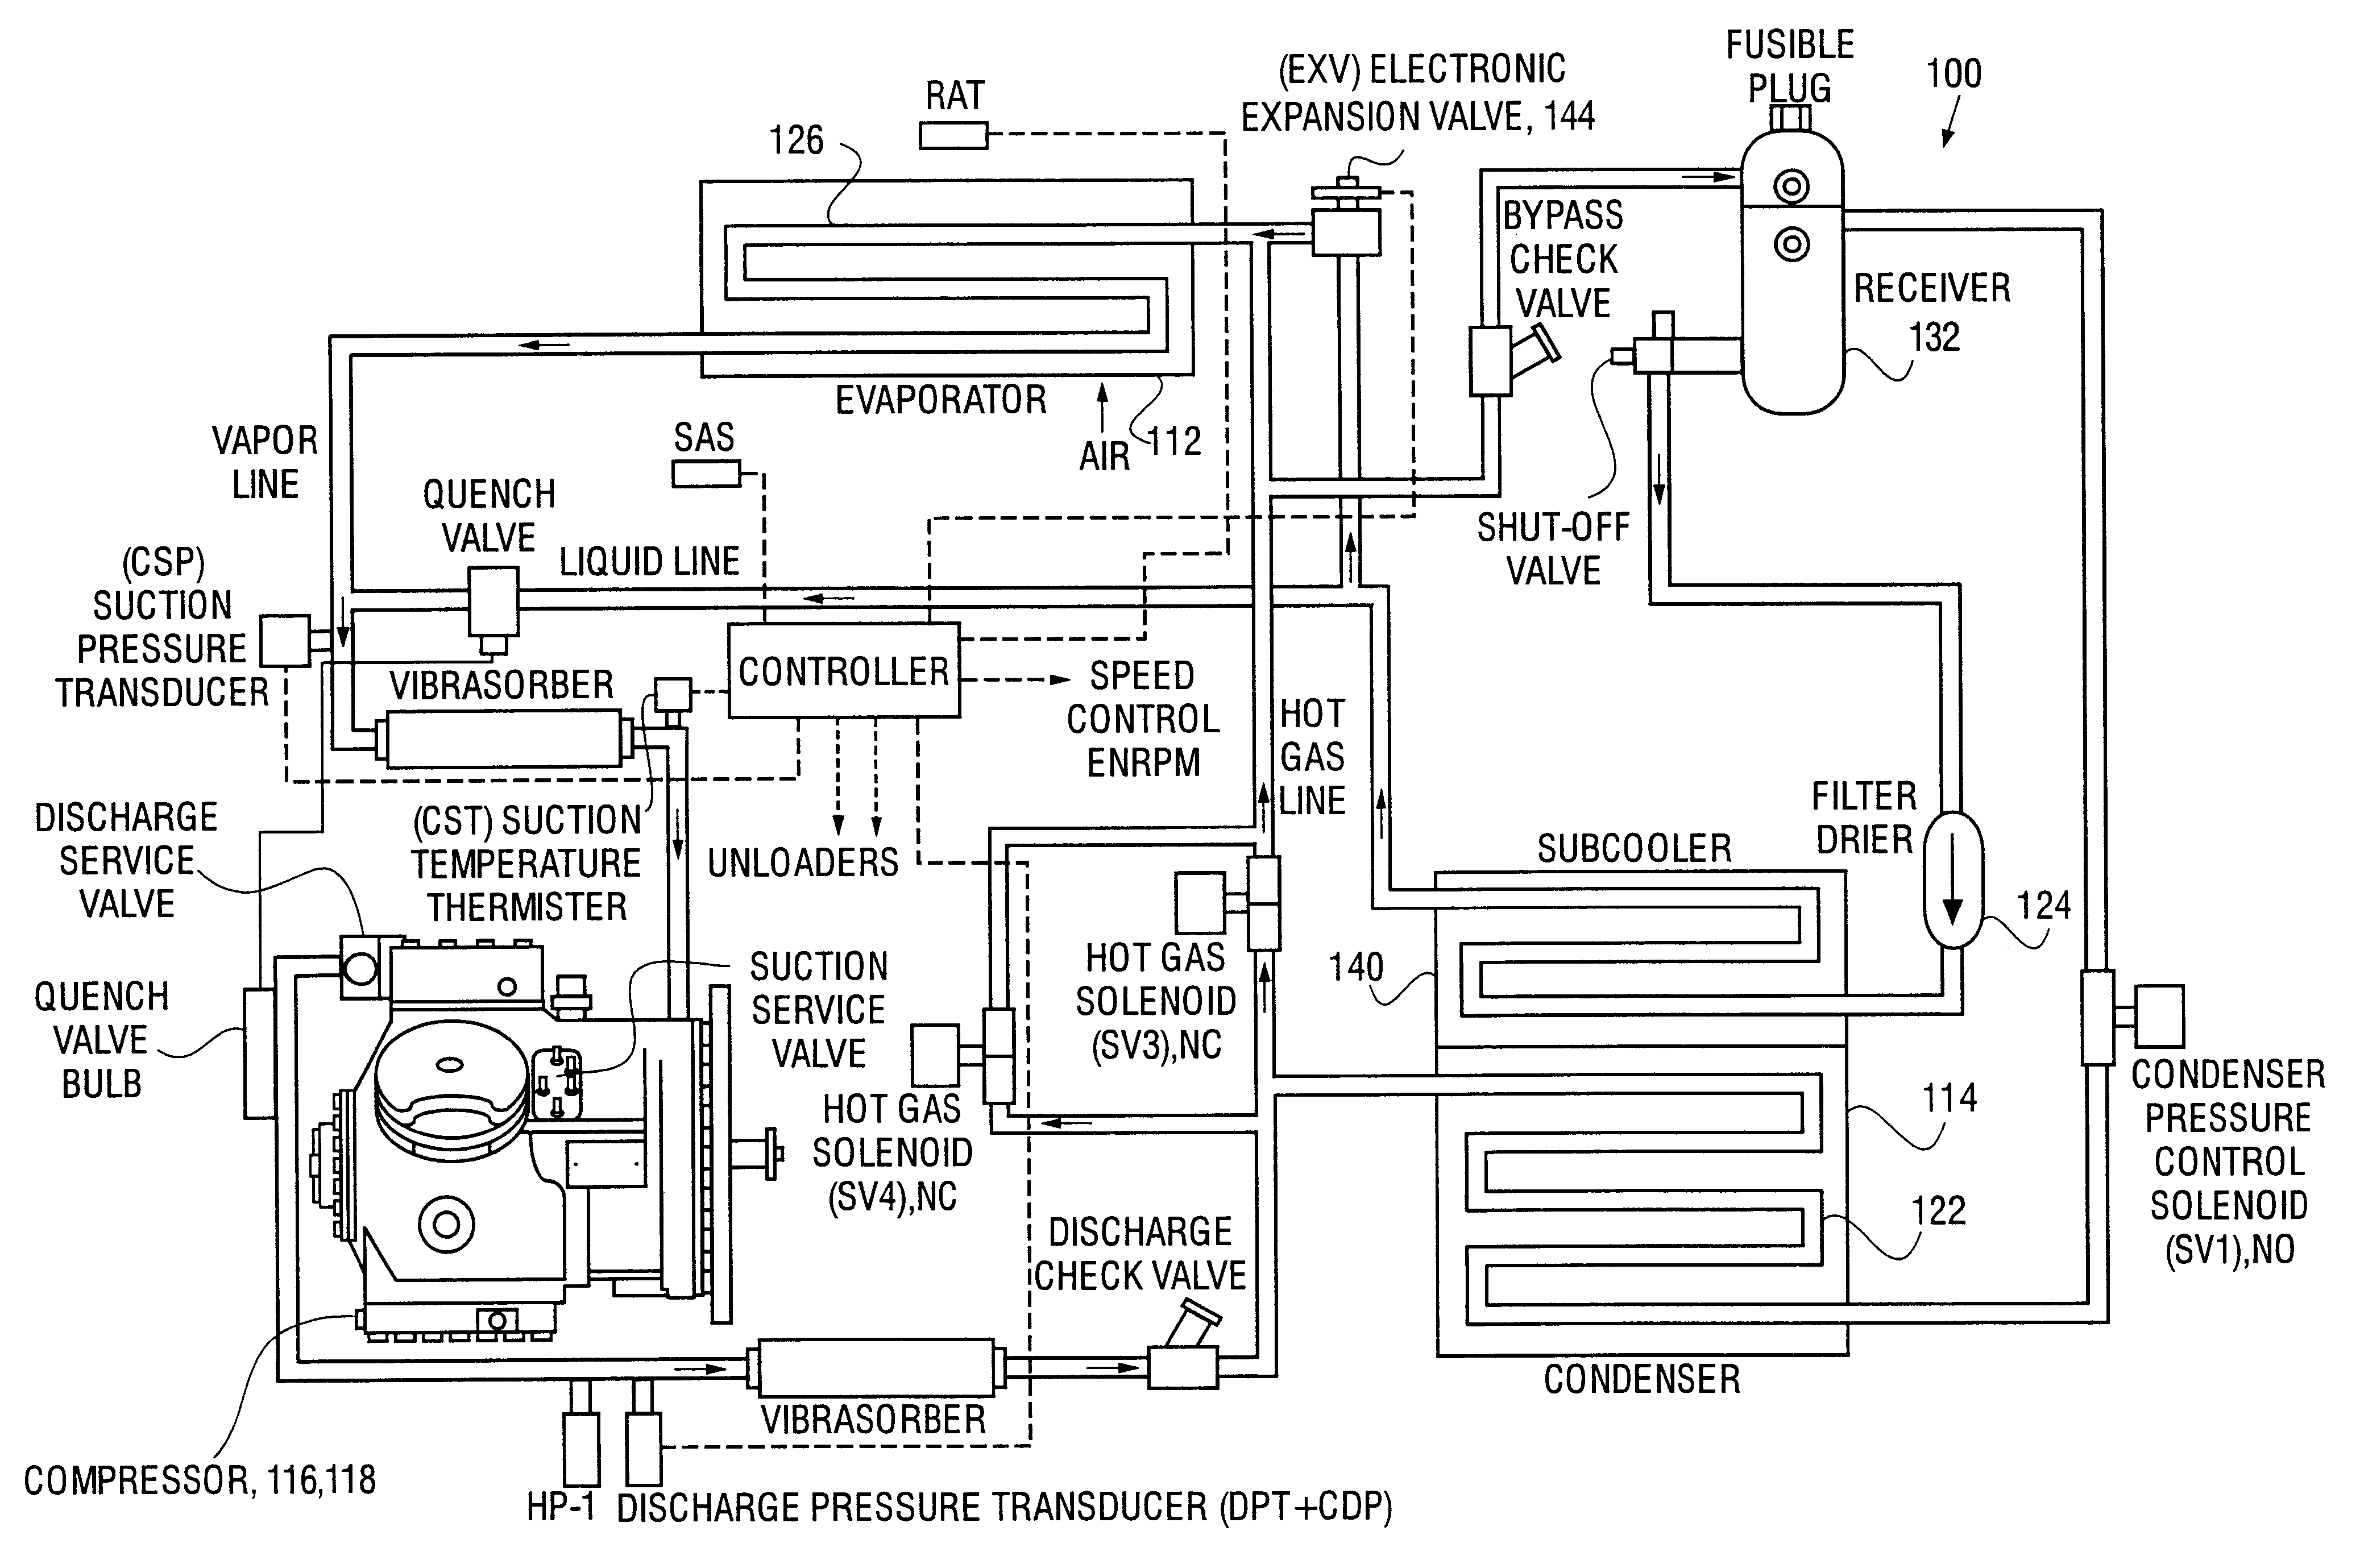 Hobart Slicer Parts Diagram Wiring And Engine 200 Switch M802 As Well Berkel 818 Further A120 A200 00